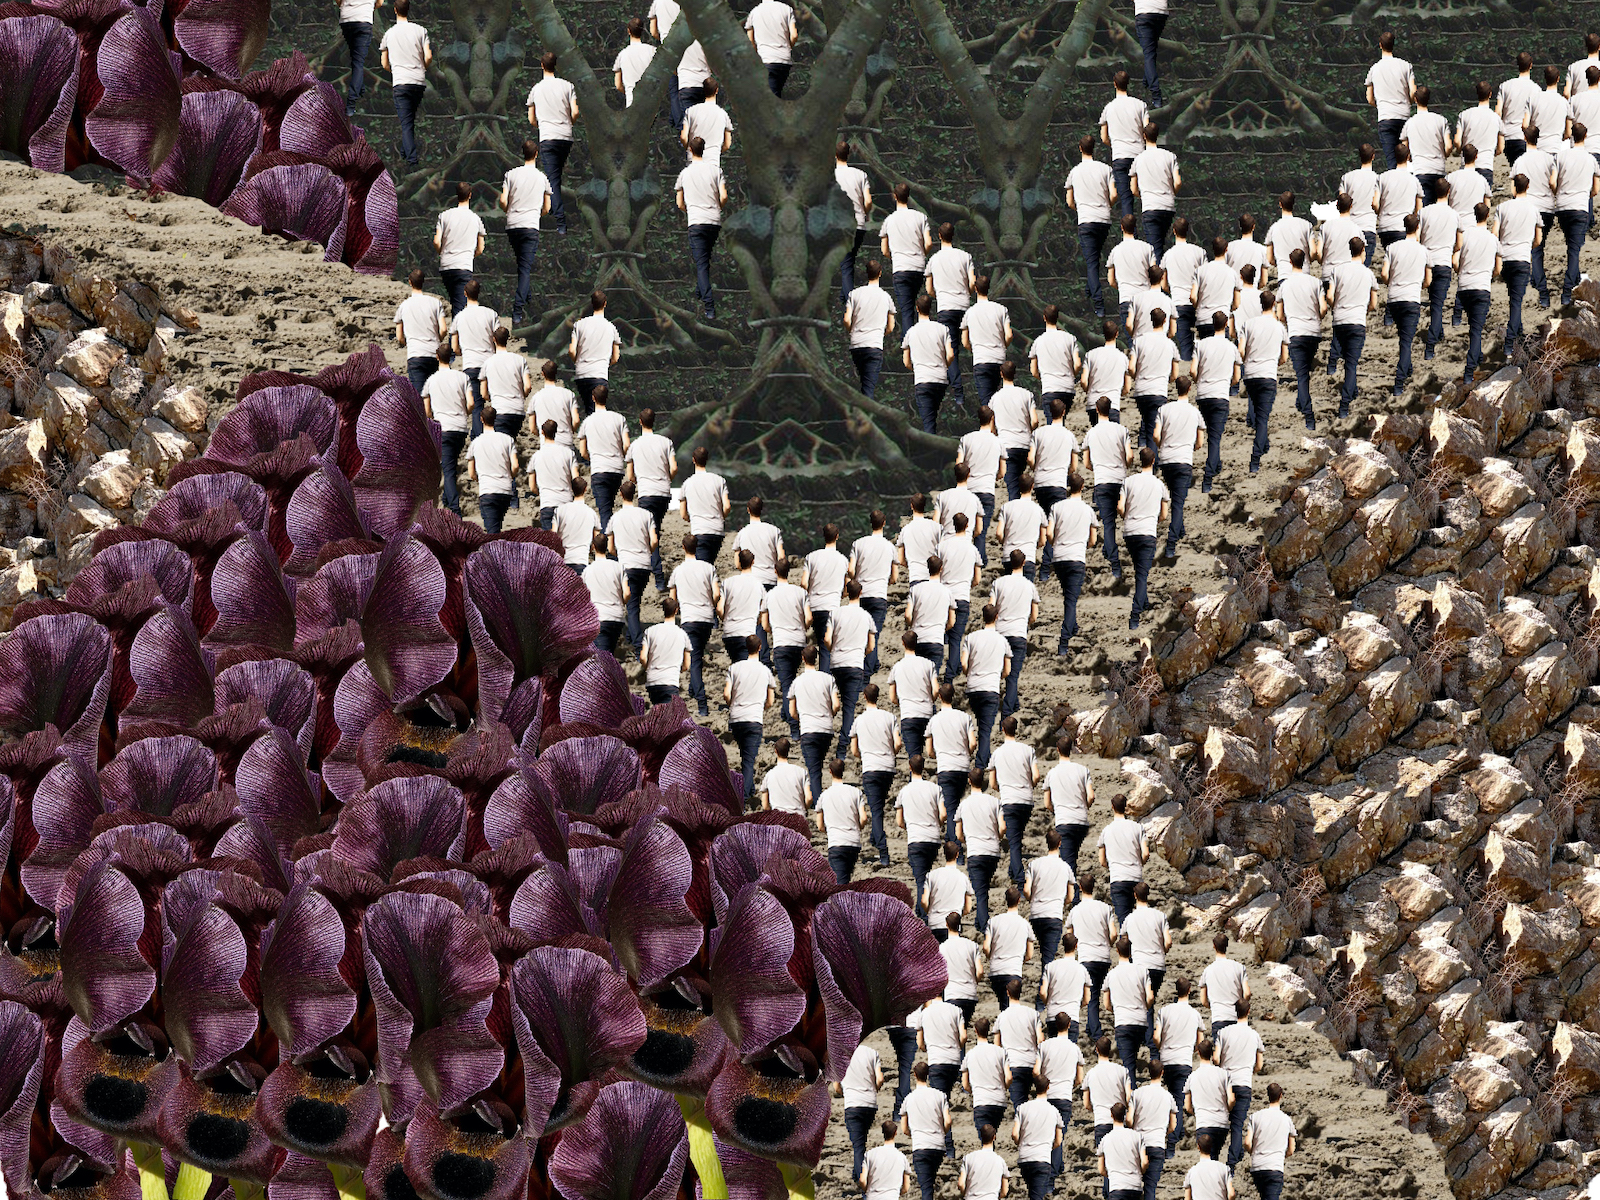 A background split into three with the repeating image of a man in a white shirt walking. On the left is background made of purple flowers, on the top is a background made of trees, on the right is a background made of rocks.